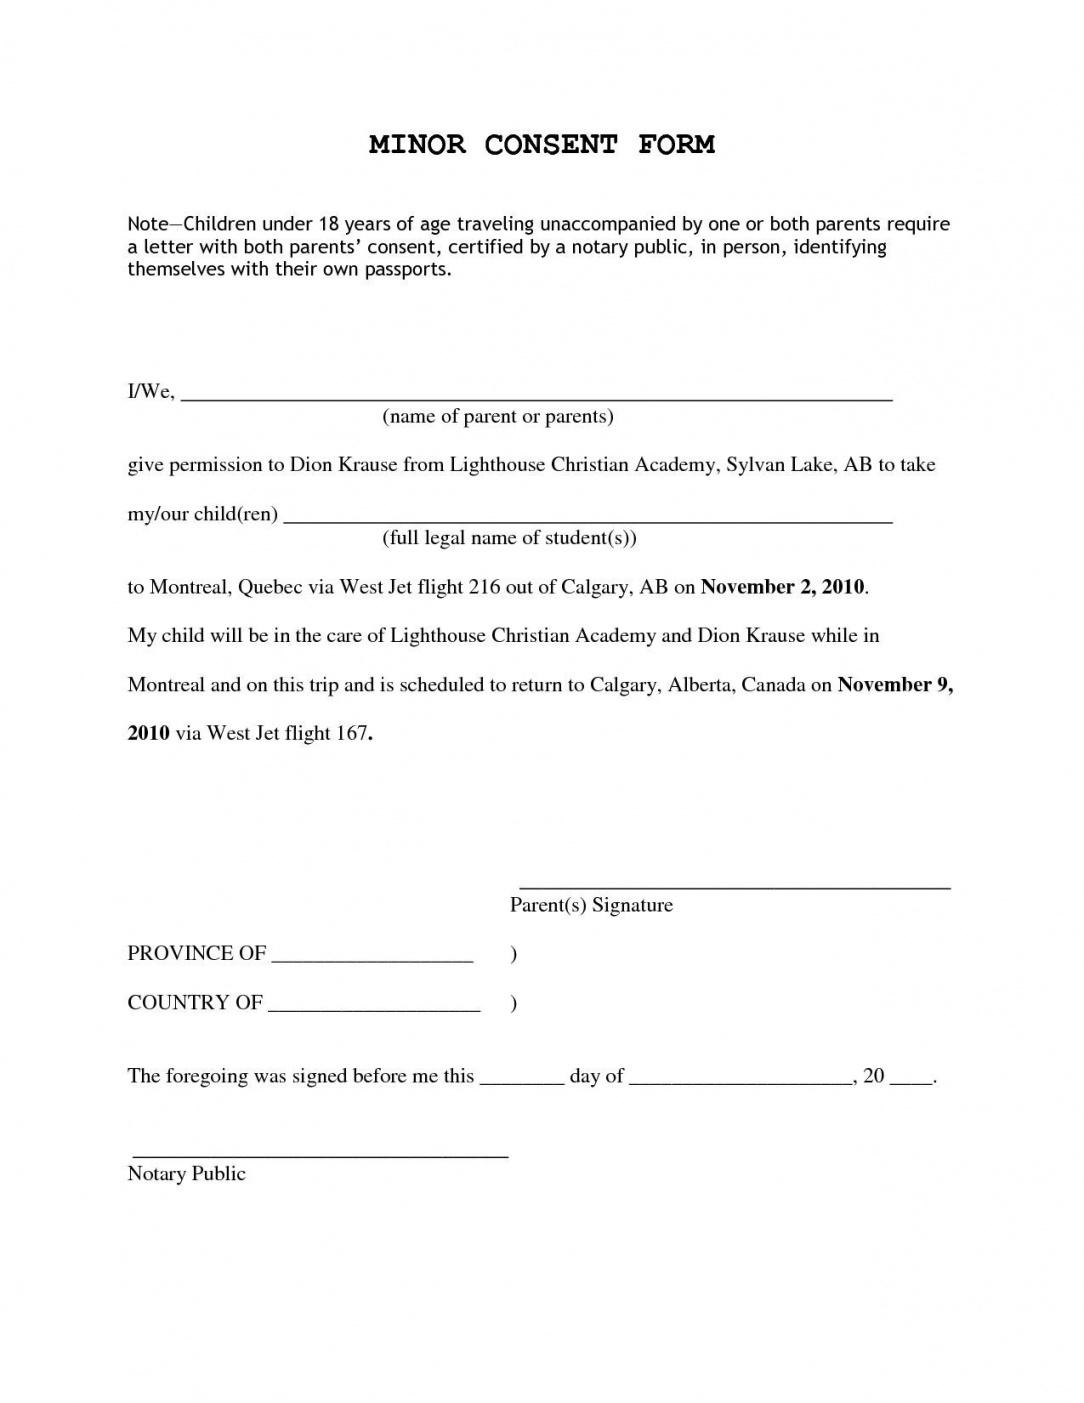 printable consent permission inside letter for children travelling parental notarized travel consent letter template pdf